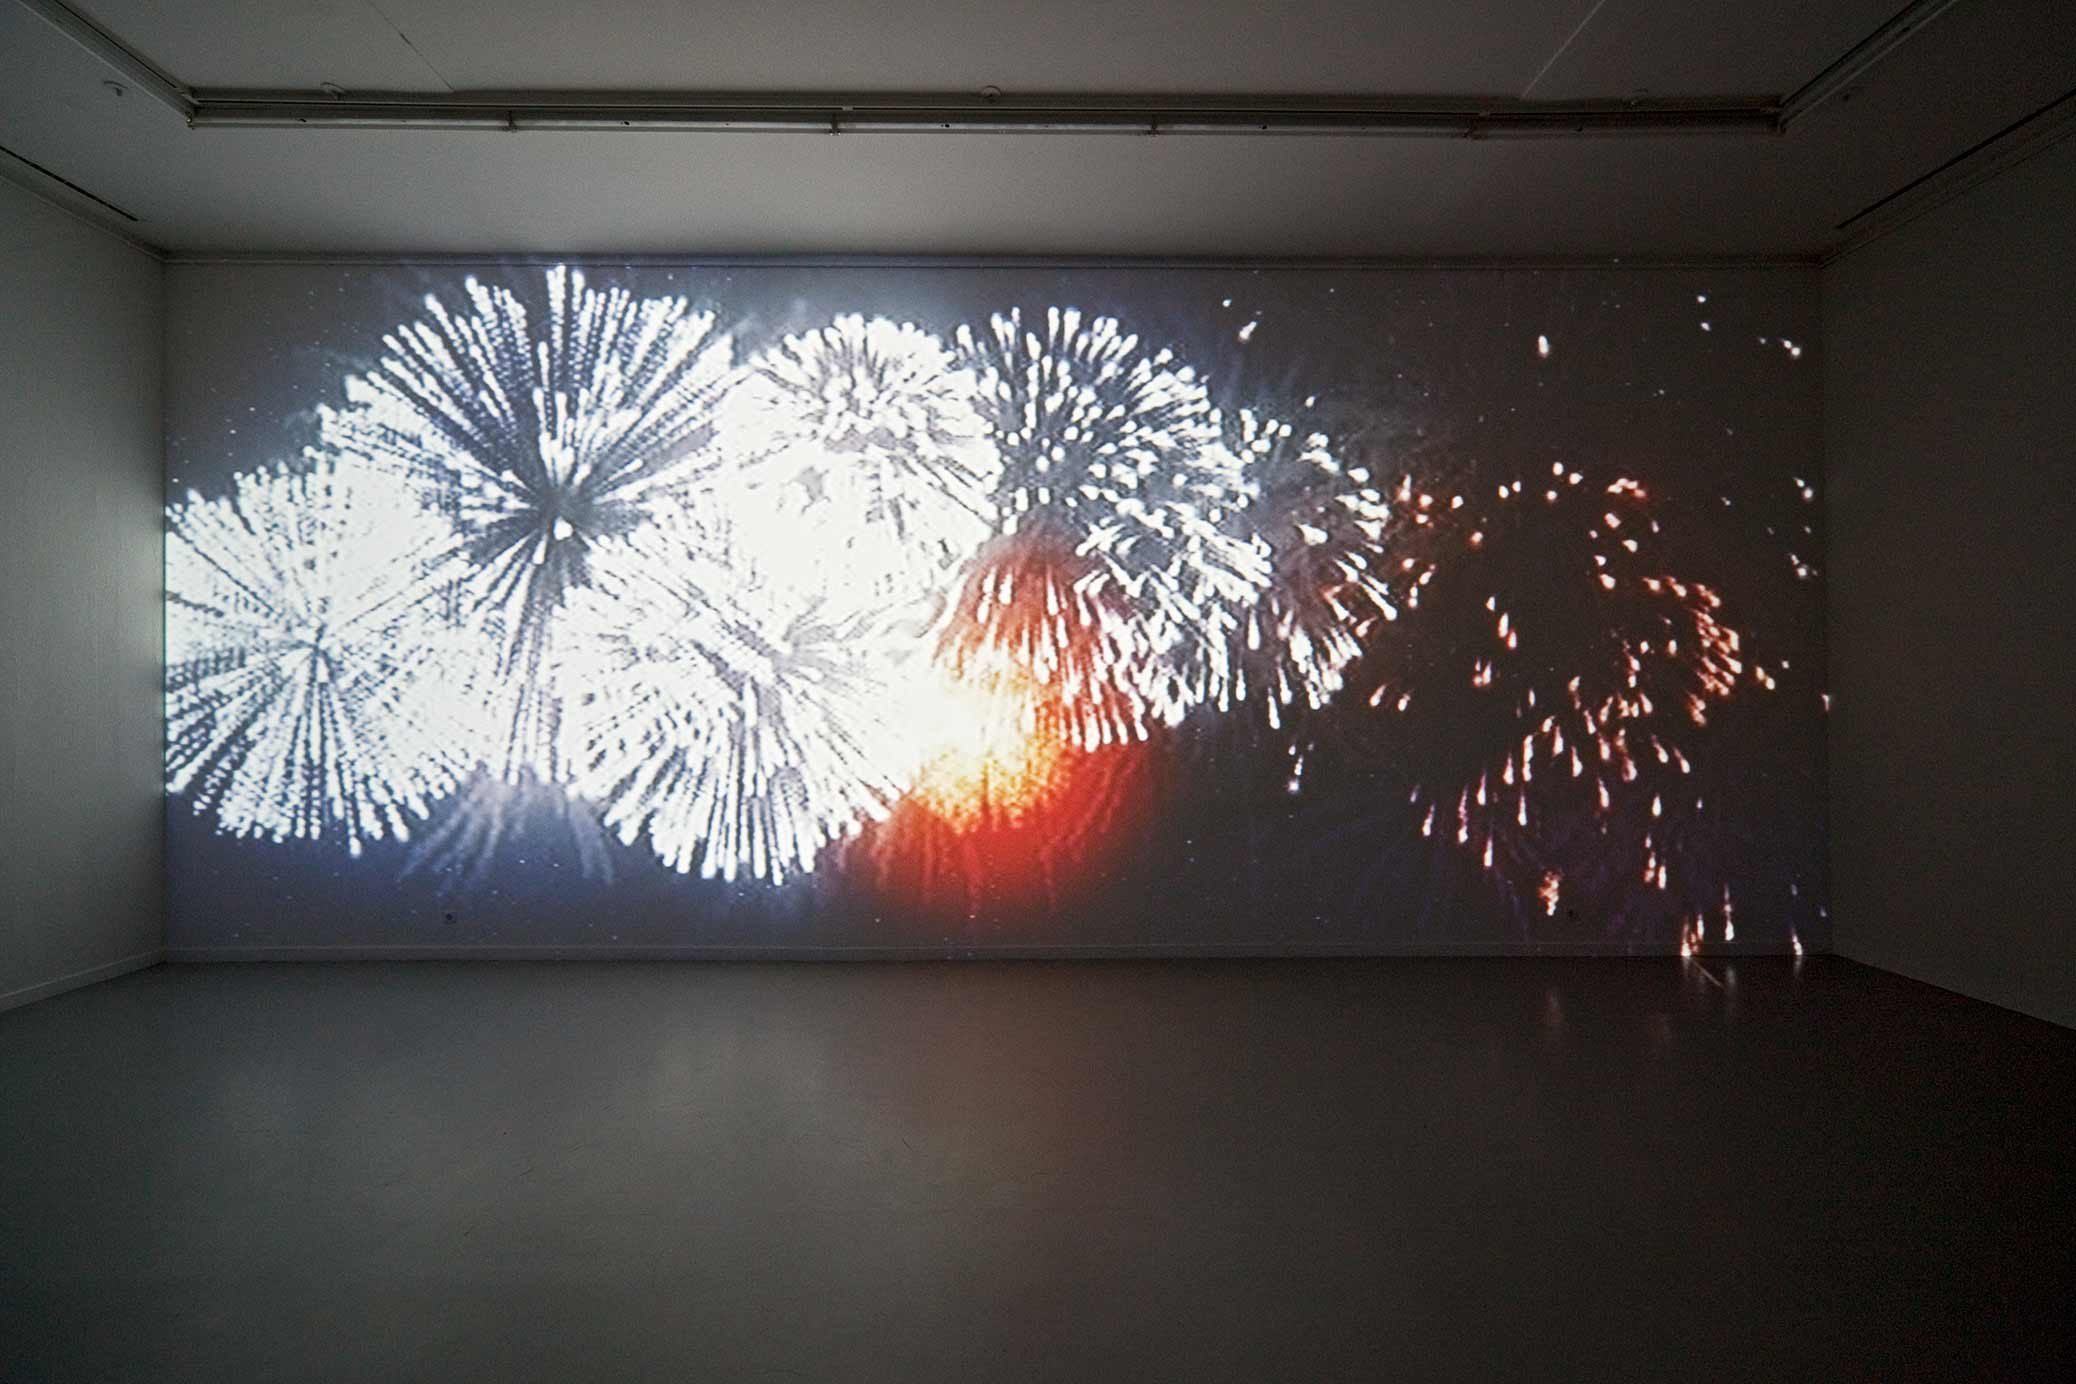 Immigrant Song, video installation, fireworks, projection on a wall.